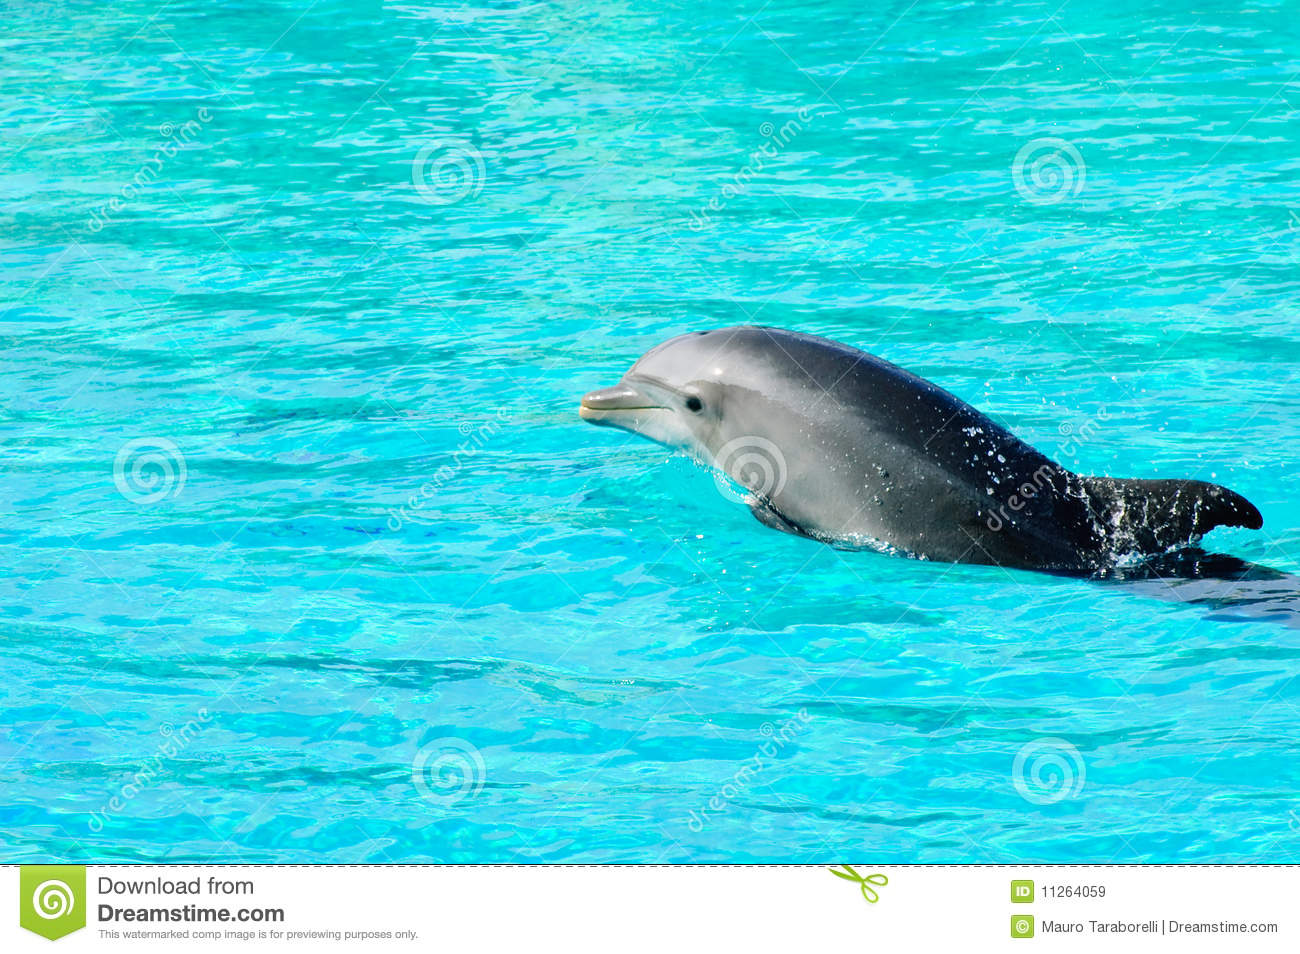 Dolphin swimming in a pool royalty free stock images image 11264059 for Poole dolphin swimming pool prices